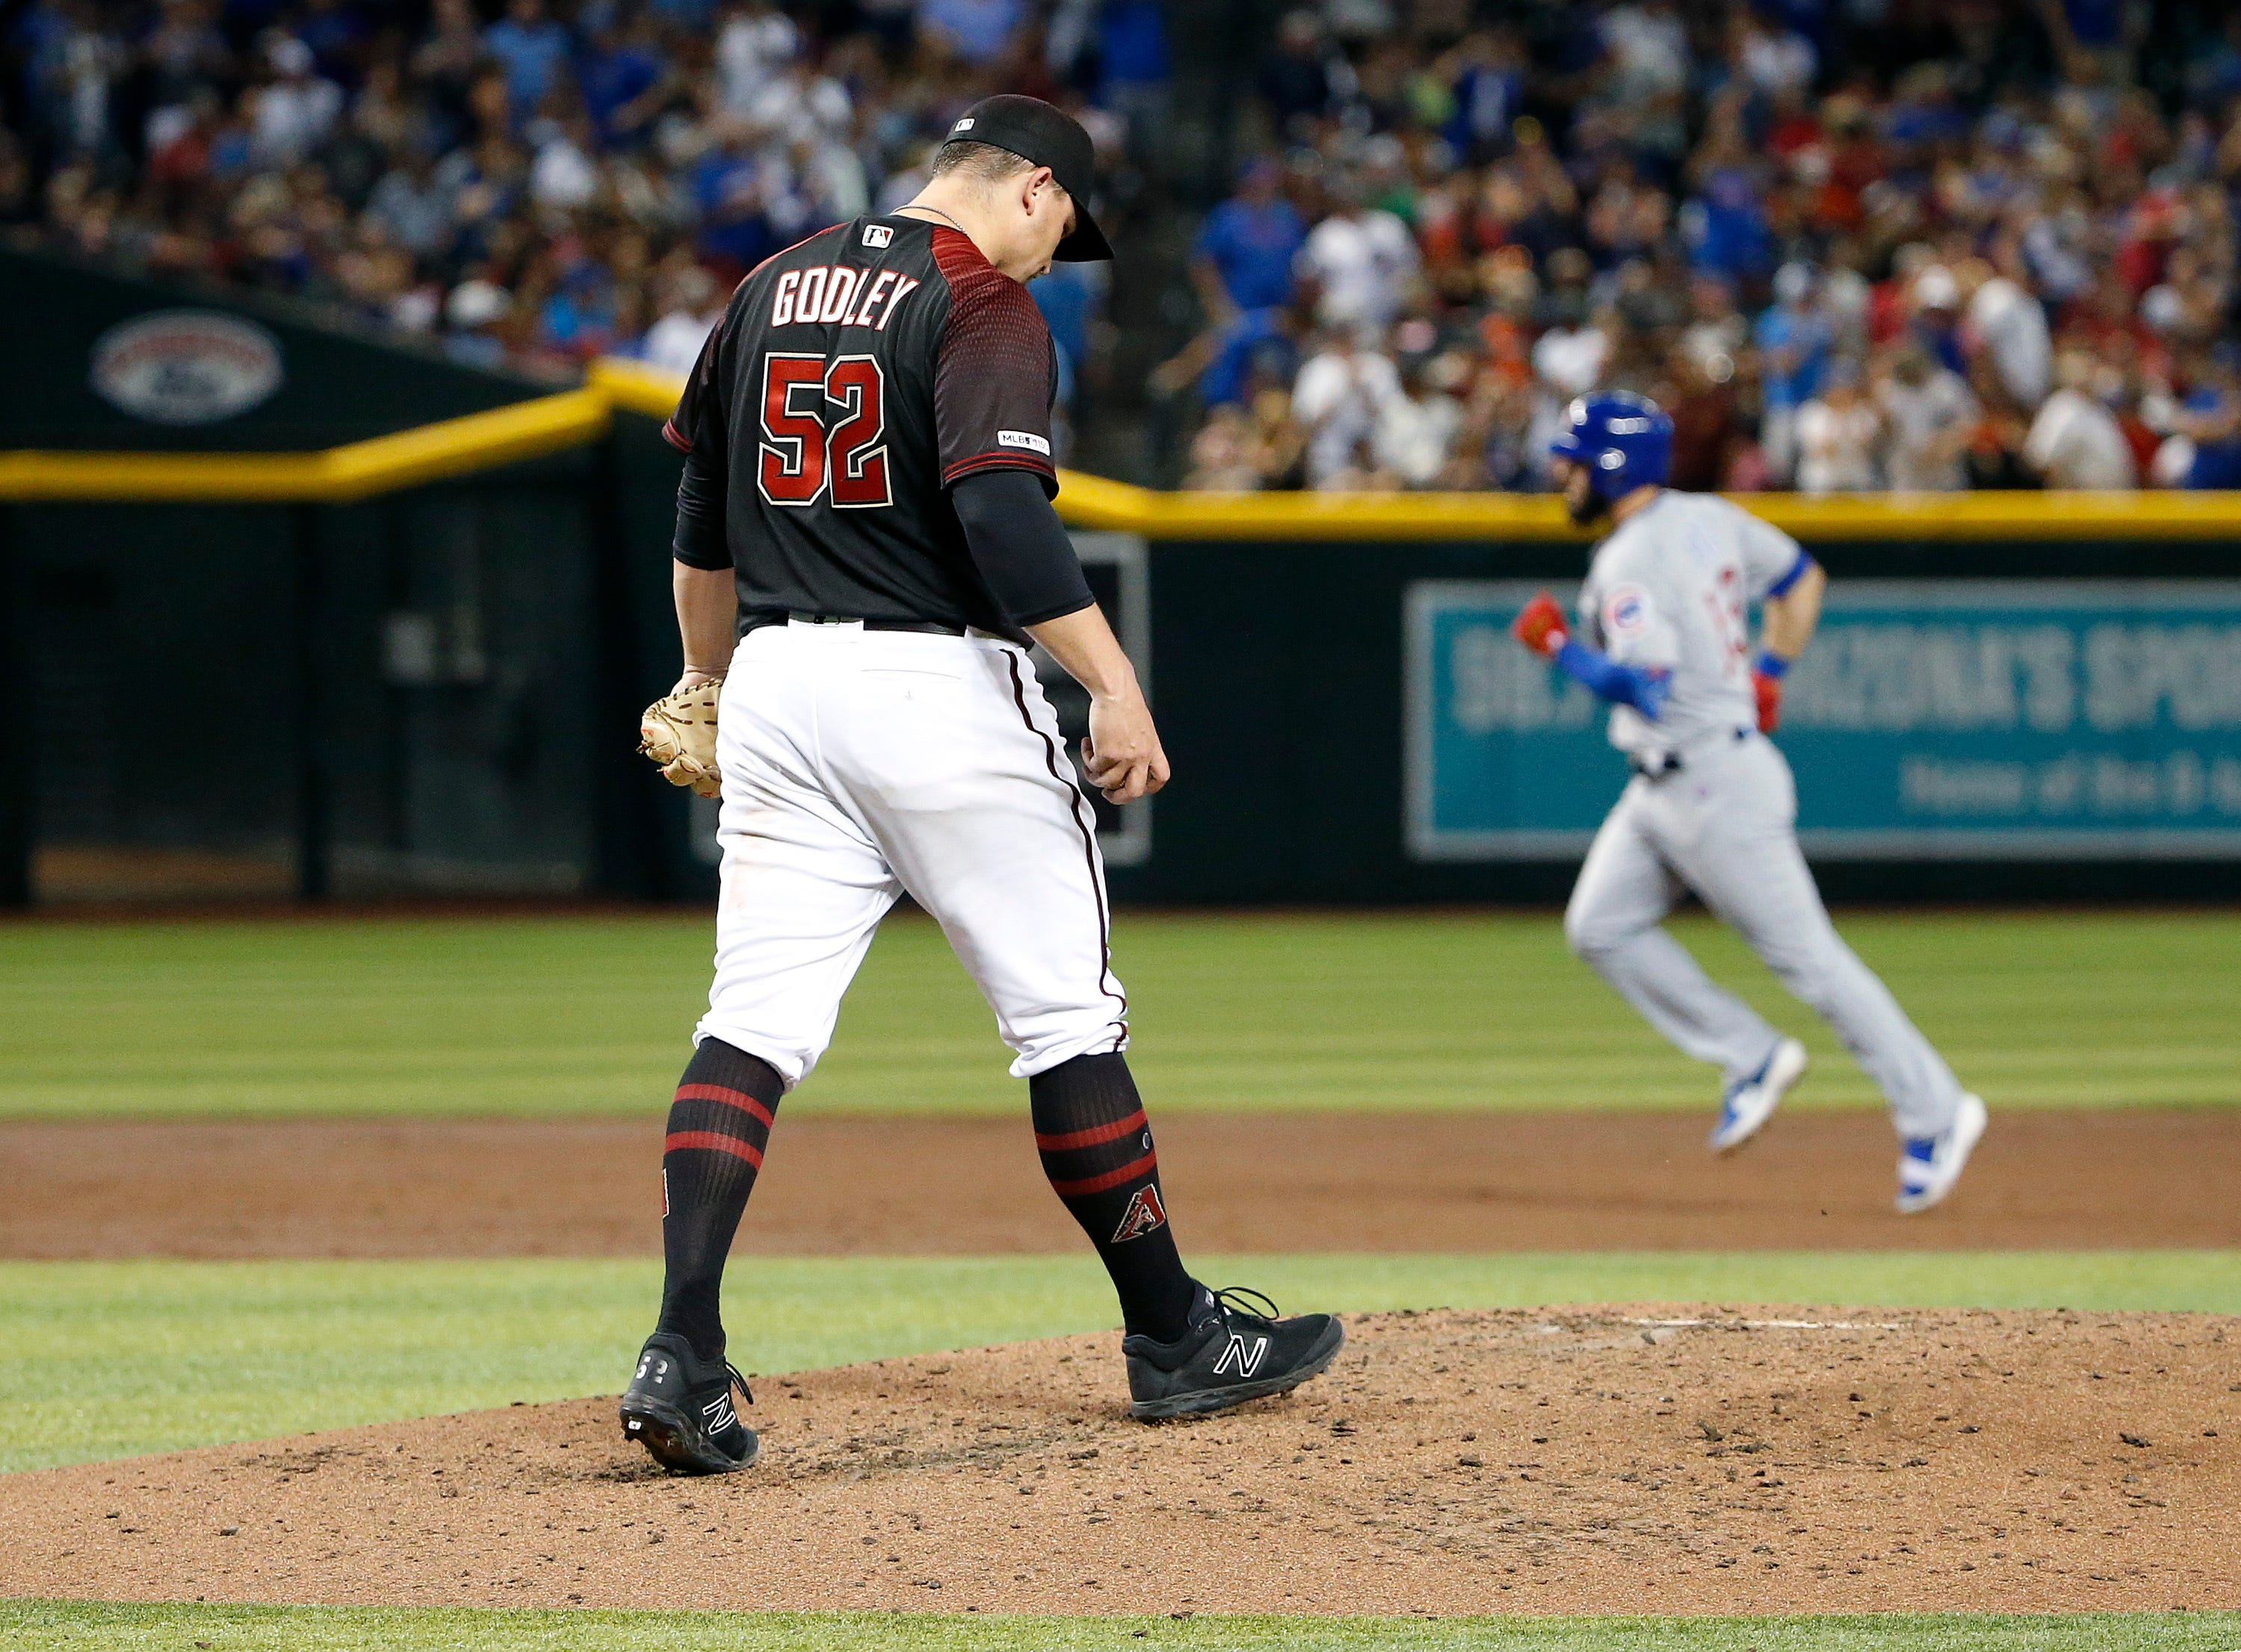 Arizona Diamondbacks starting pitcher Zack Godley (52) walks back to the mound after giving up a three-run home run to Chicago Cubs' David Bote, right, during the third inning of a baseball game, Saturday, April 27, 2019, in Phoenix. (AP Photo/Ralph Freso)